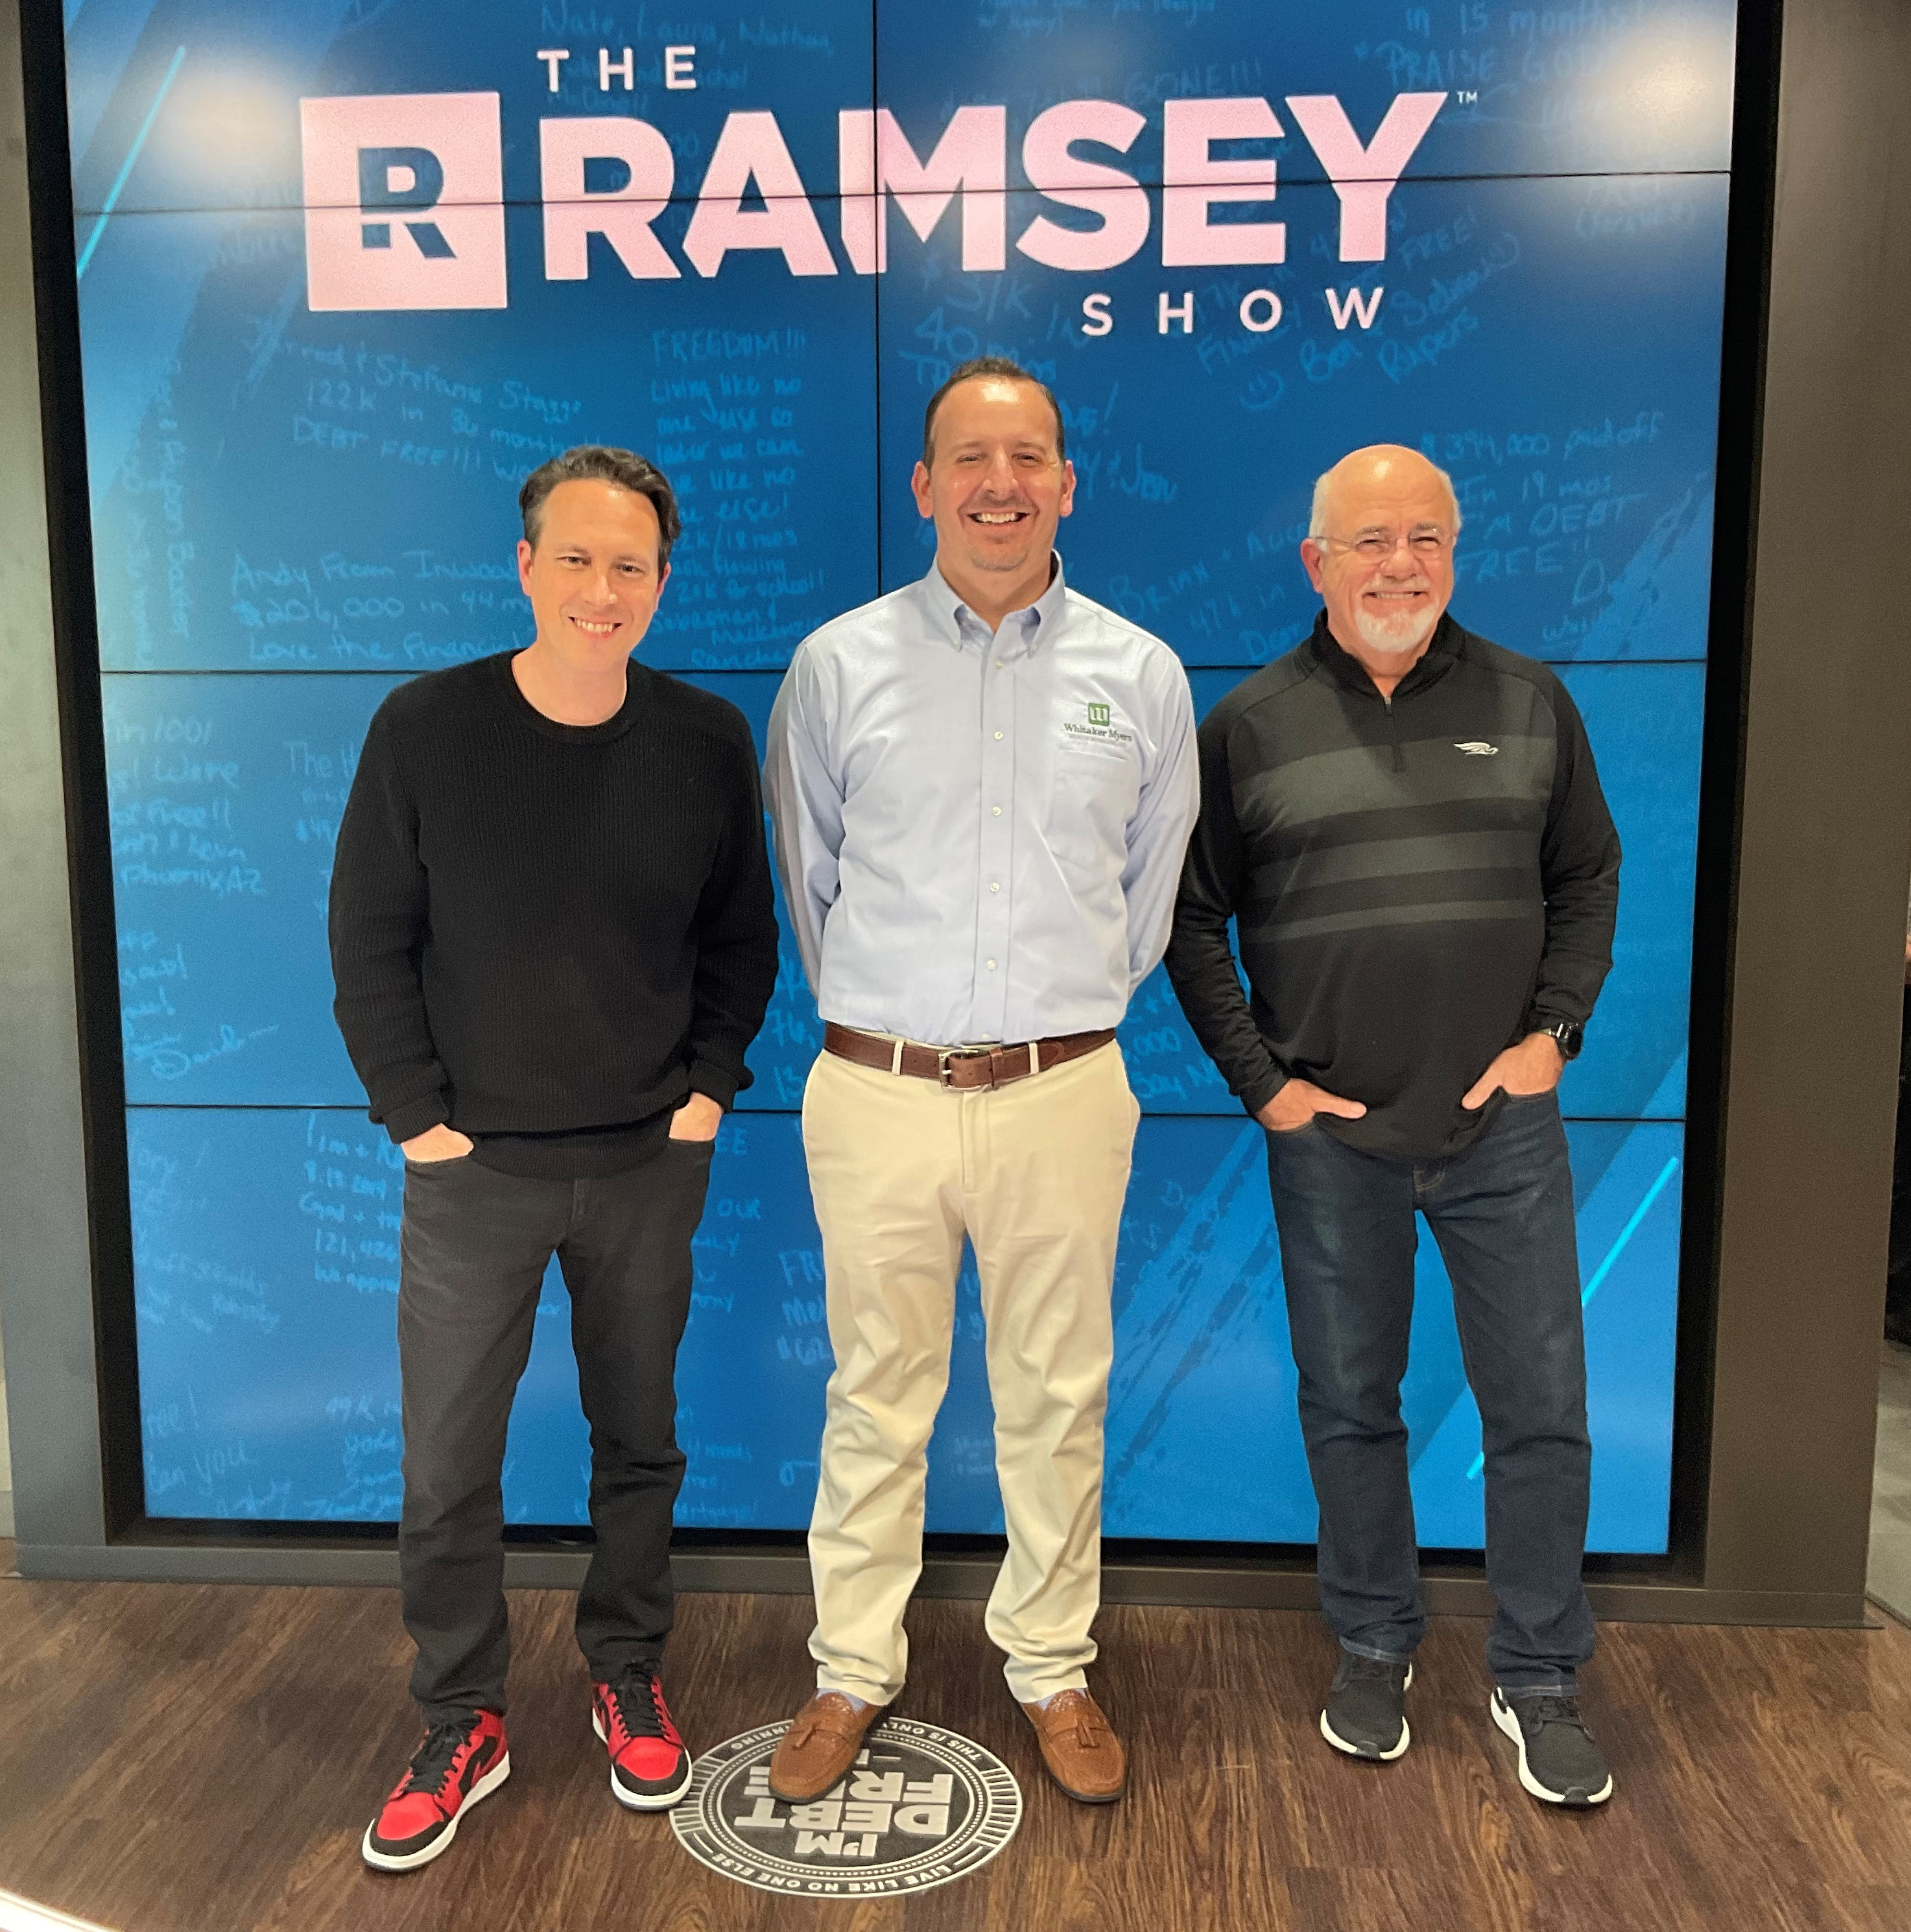 John-mark Young, financial advisor Smithville OH